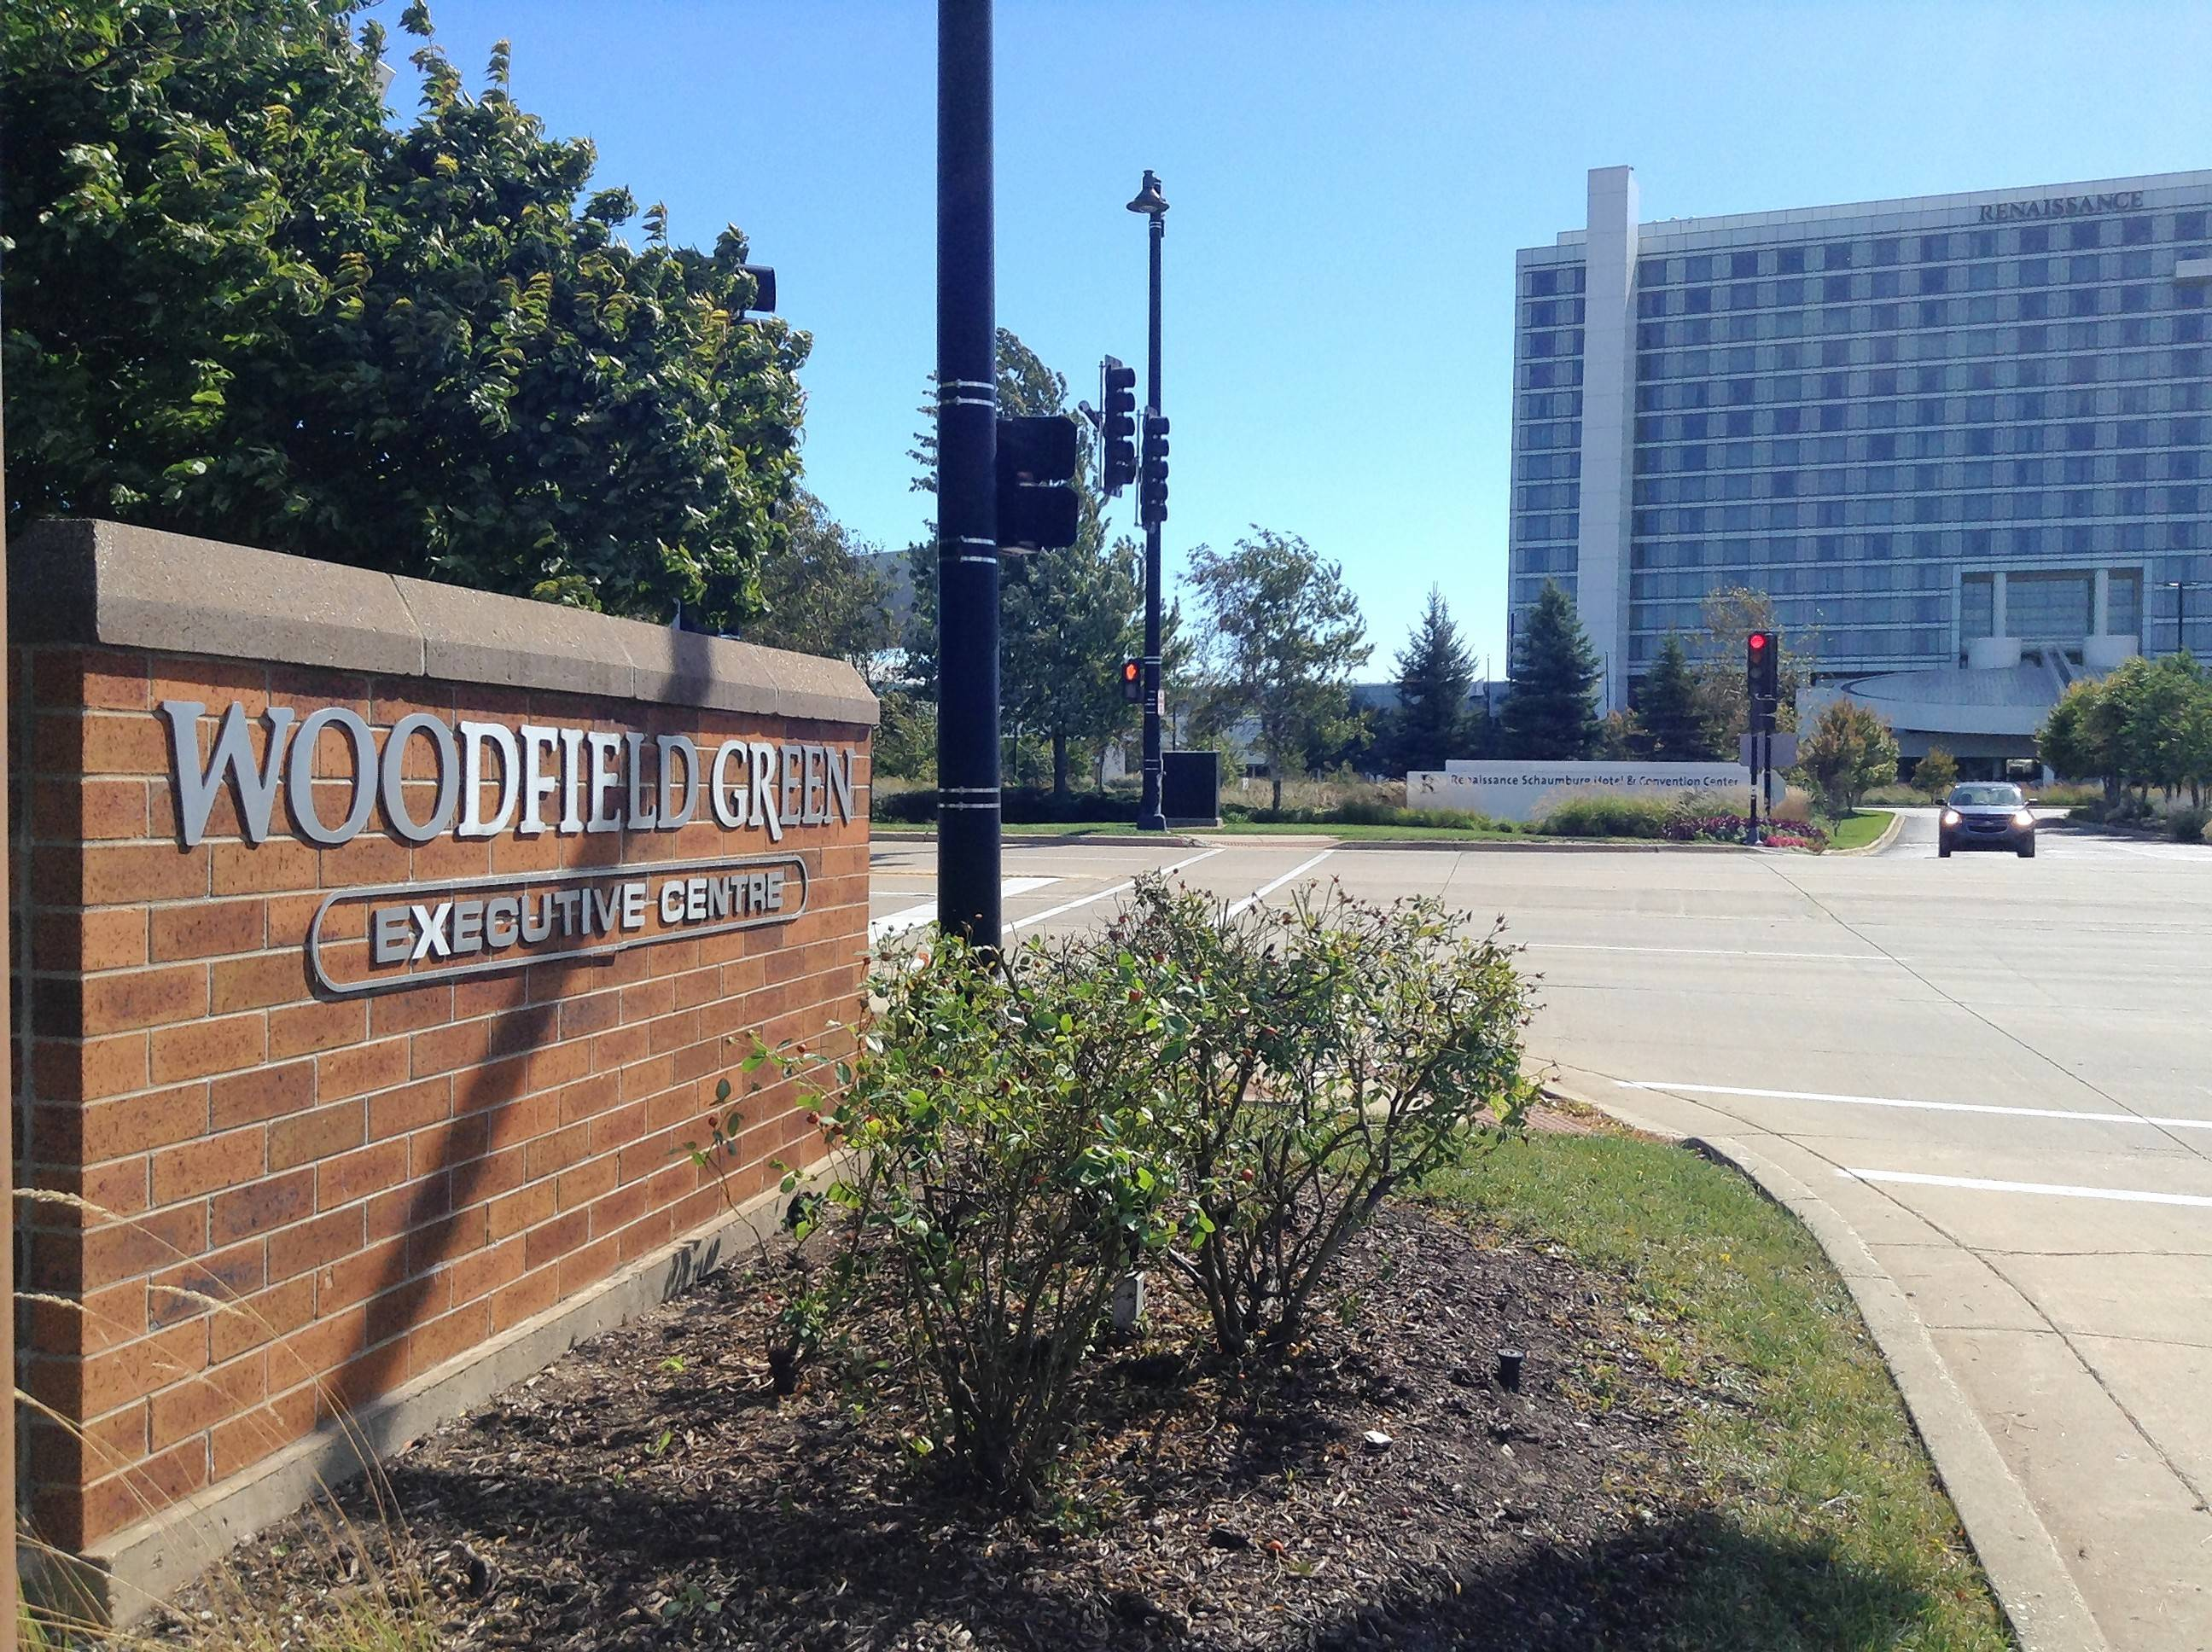 Schaumburg village trustees have offered to buy the one-story office buildings in the Woodfield Green Executive Centre just north of the village's convention center and Renaissance Hotel for a new entertainment district and to reconfigure Thoreau Drive.